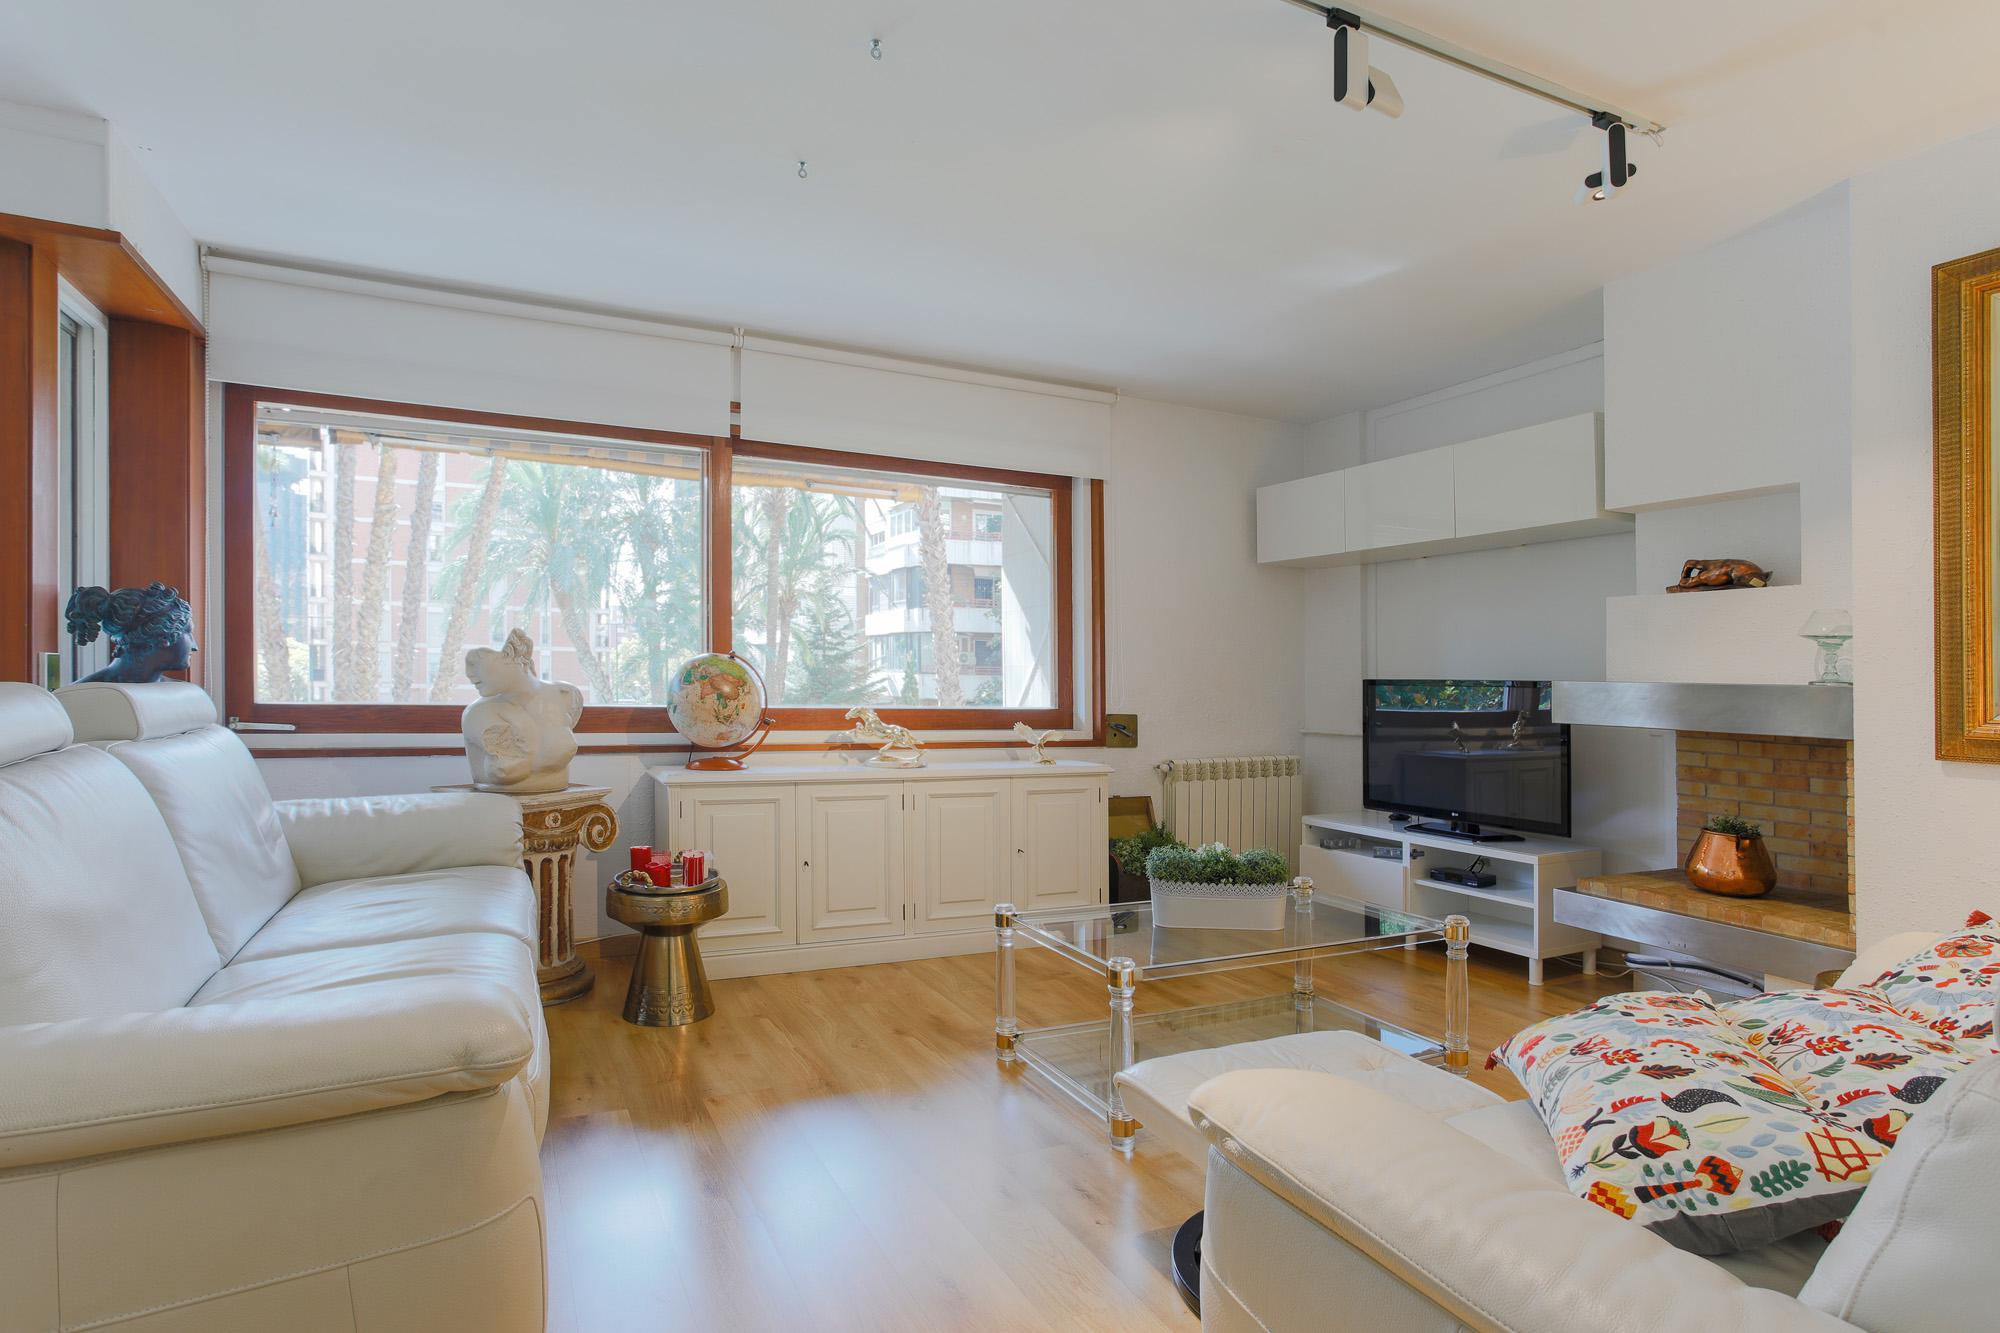 232863 Apartment for sale in Les Corts, Pedralbes 10